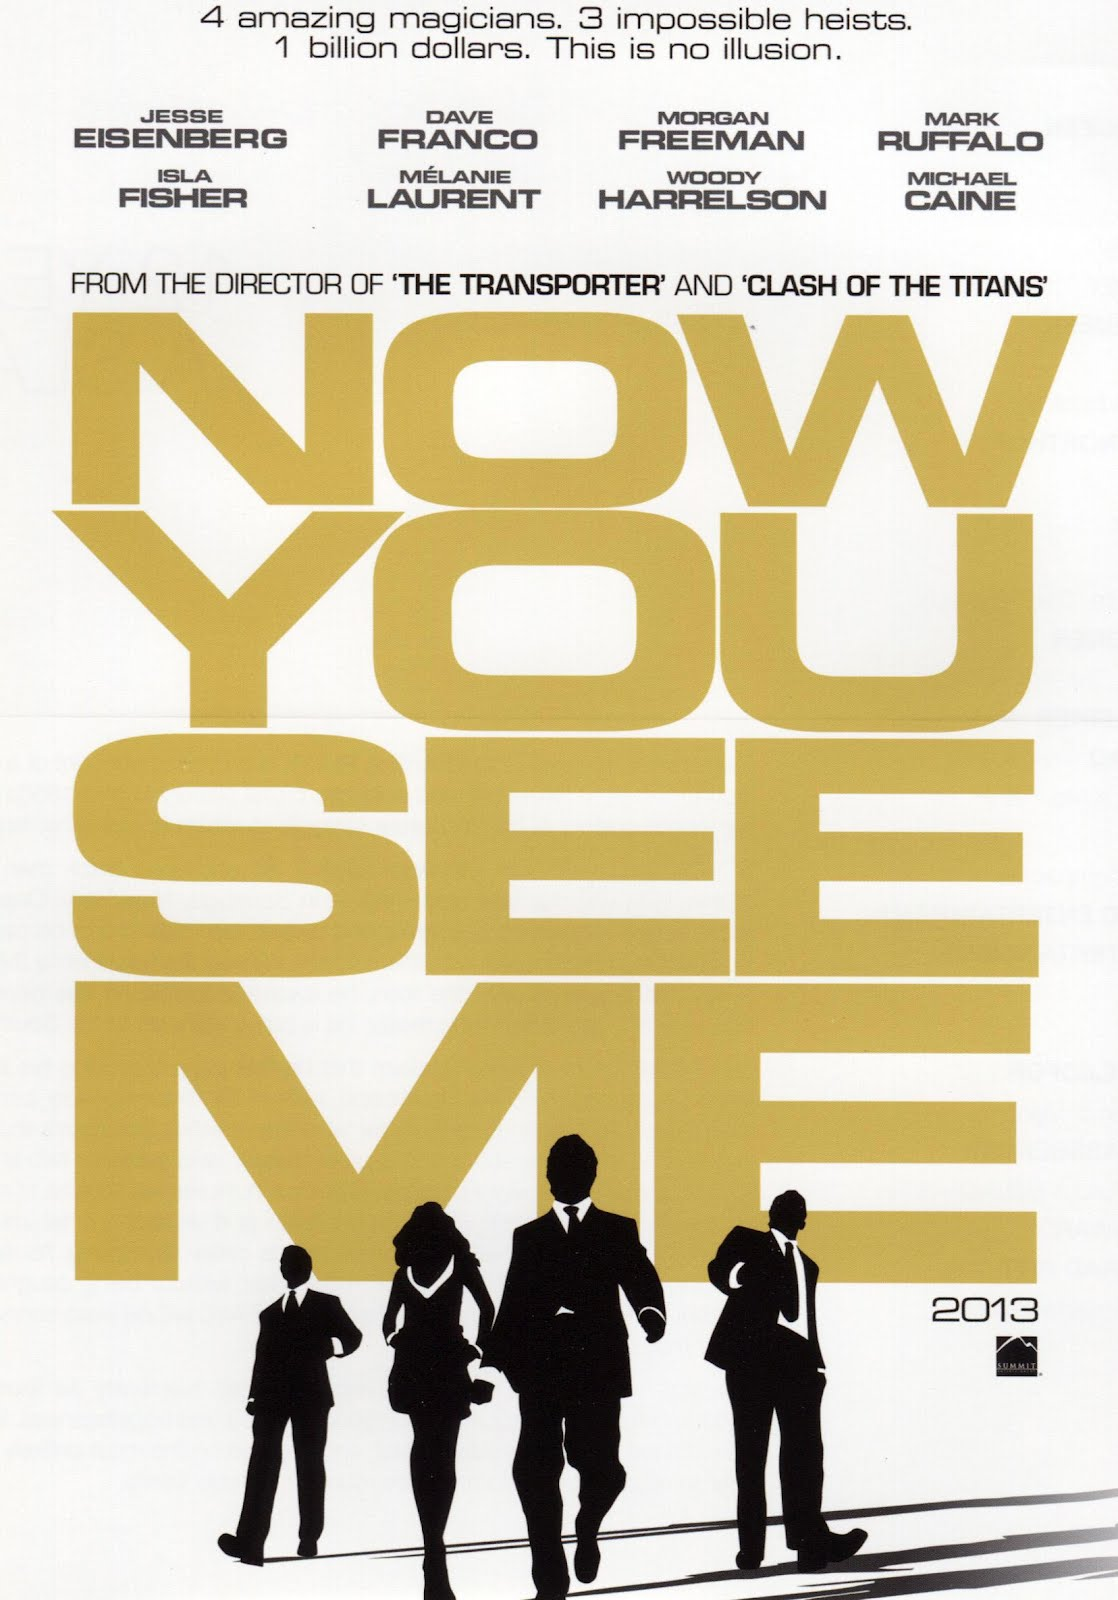 http://4.bp.blogspot.com/-U-ag3m7G3eM/T5LeSyMc6AI/AAAAAAAADiA/TGfywLVQLQE/s1600/now-you-see-me-movie-poster-2013.jpg